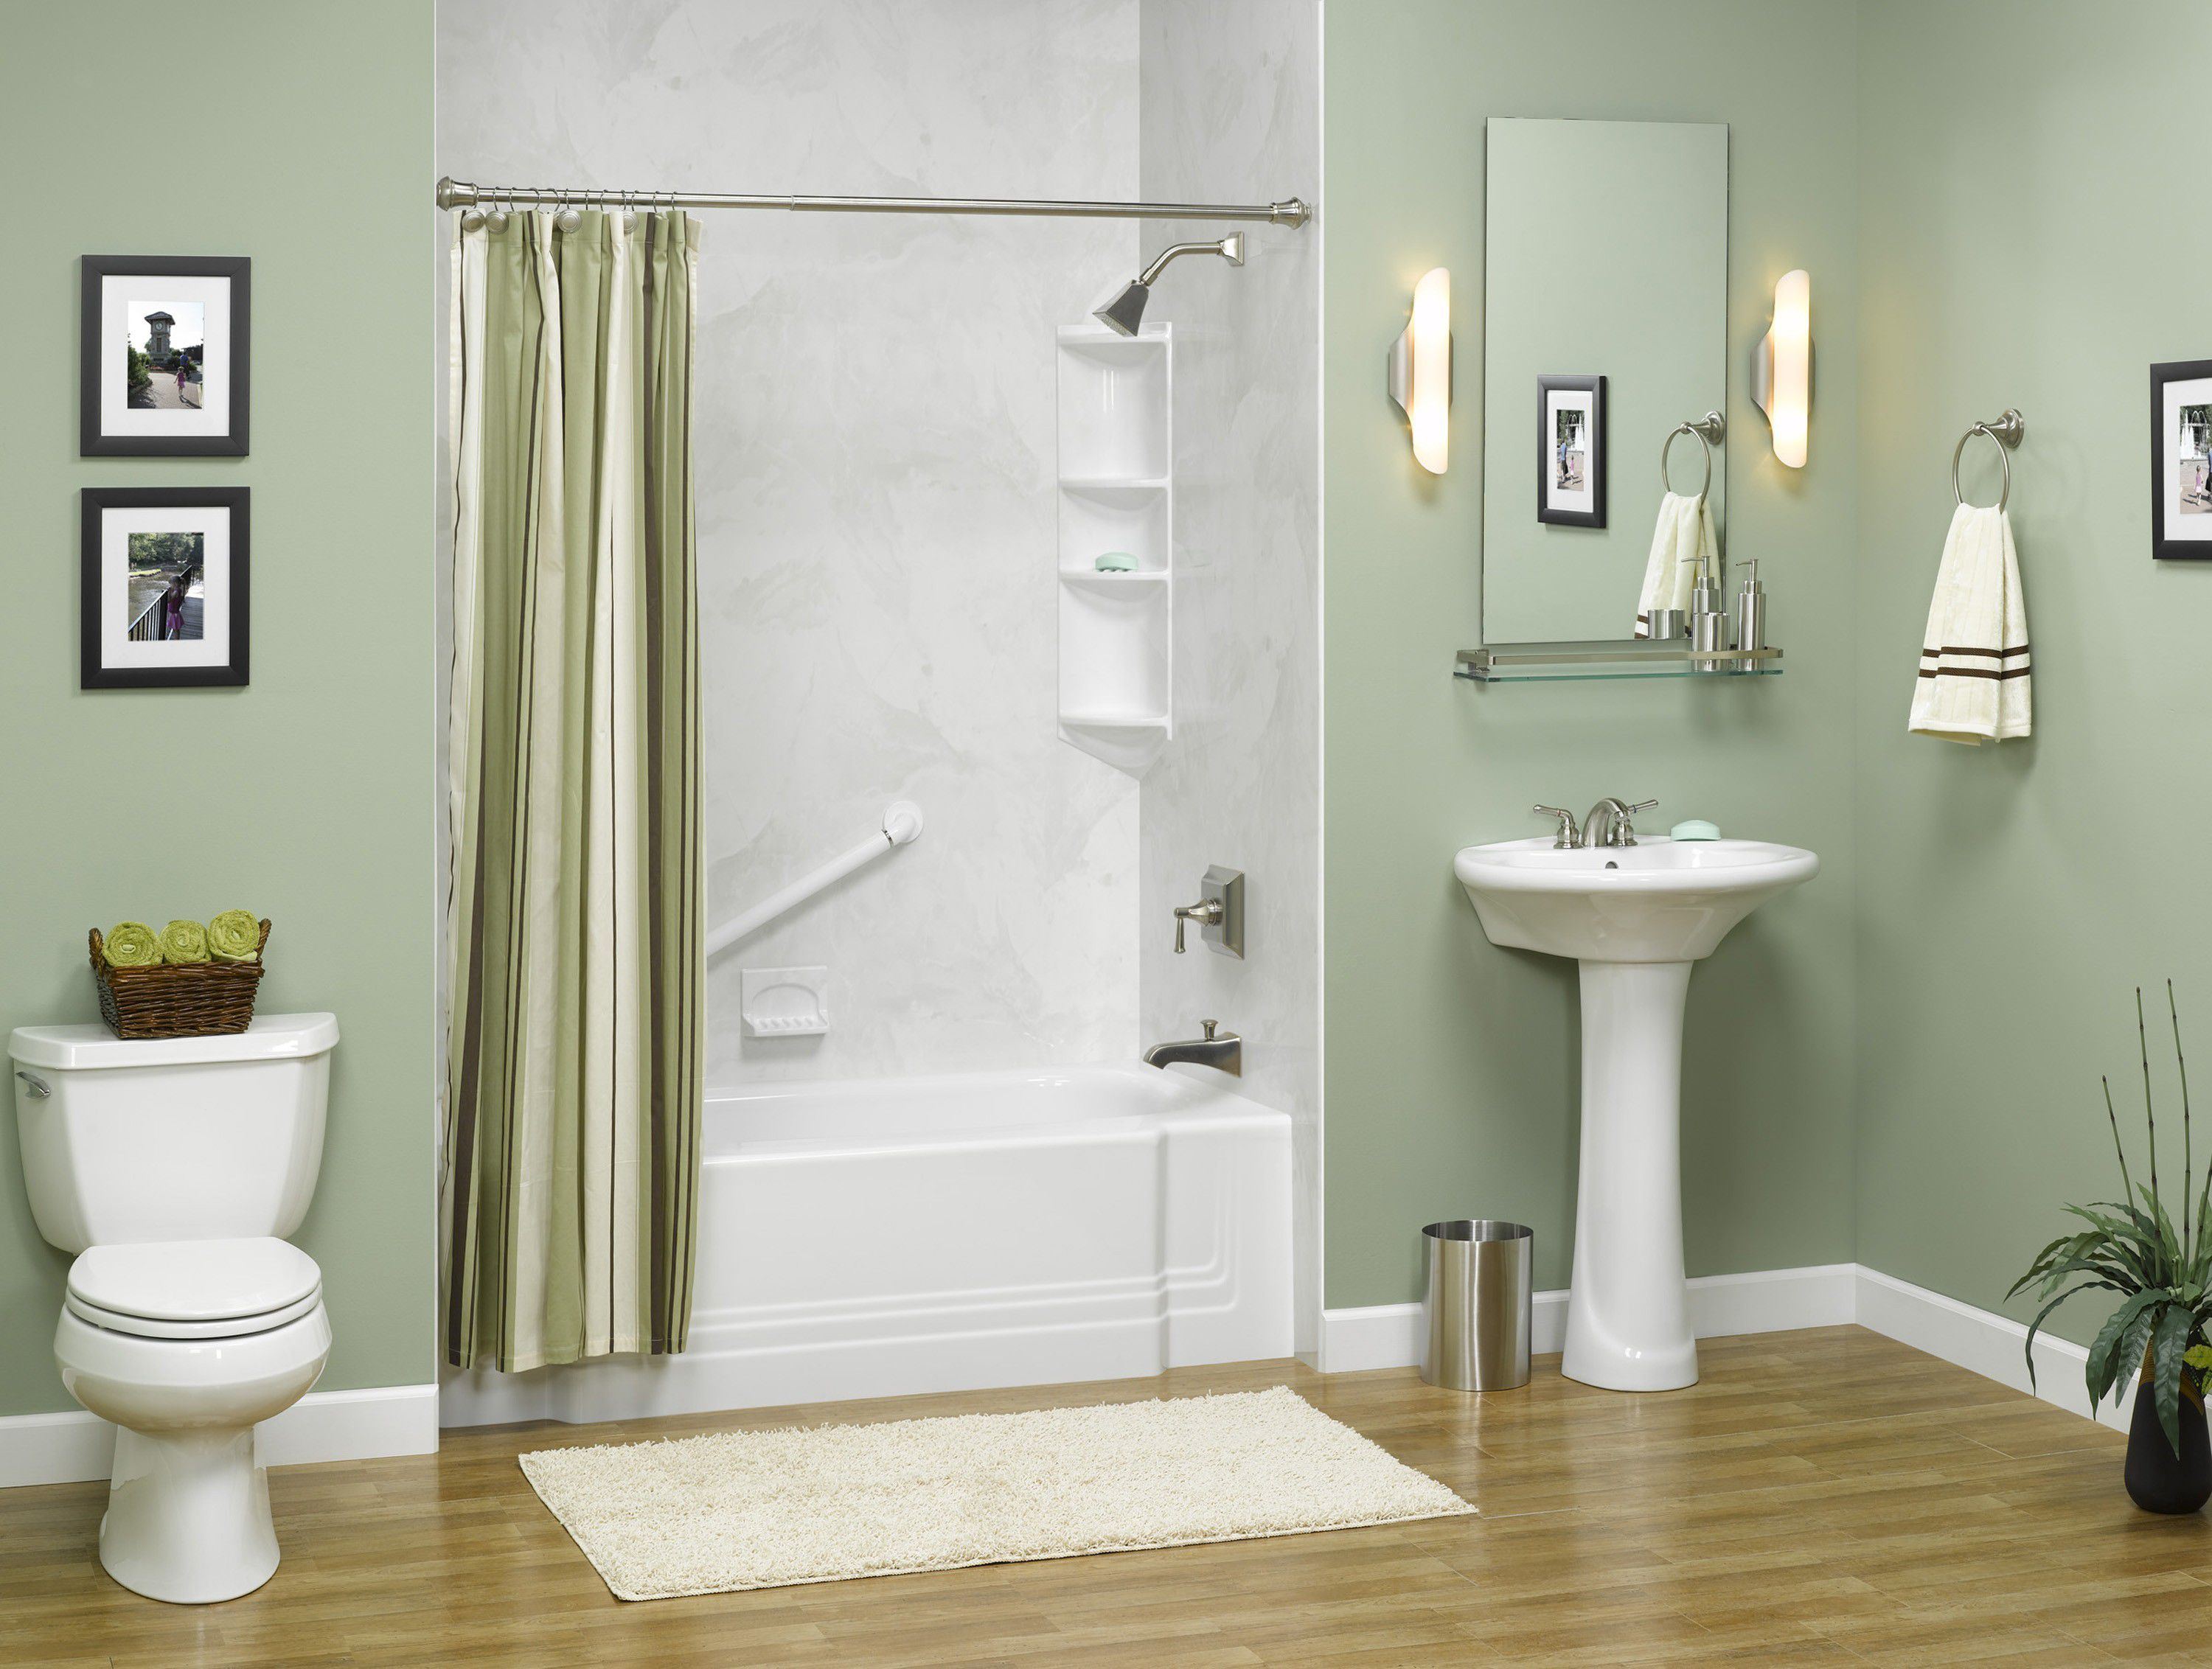 Add White Pedestal Sink and Bathtub for Simple Room using Grey Bathroom Paint Ideas with Hardwood Flooring